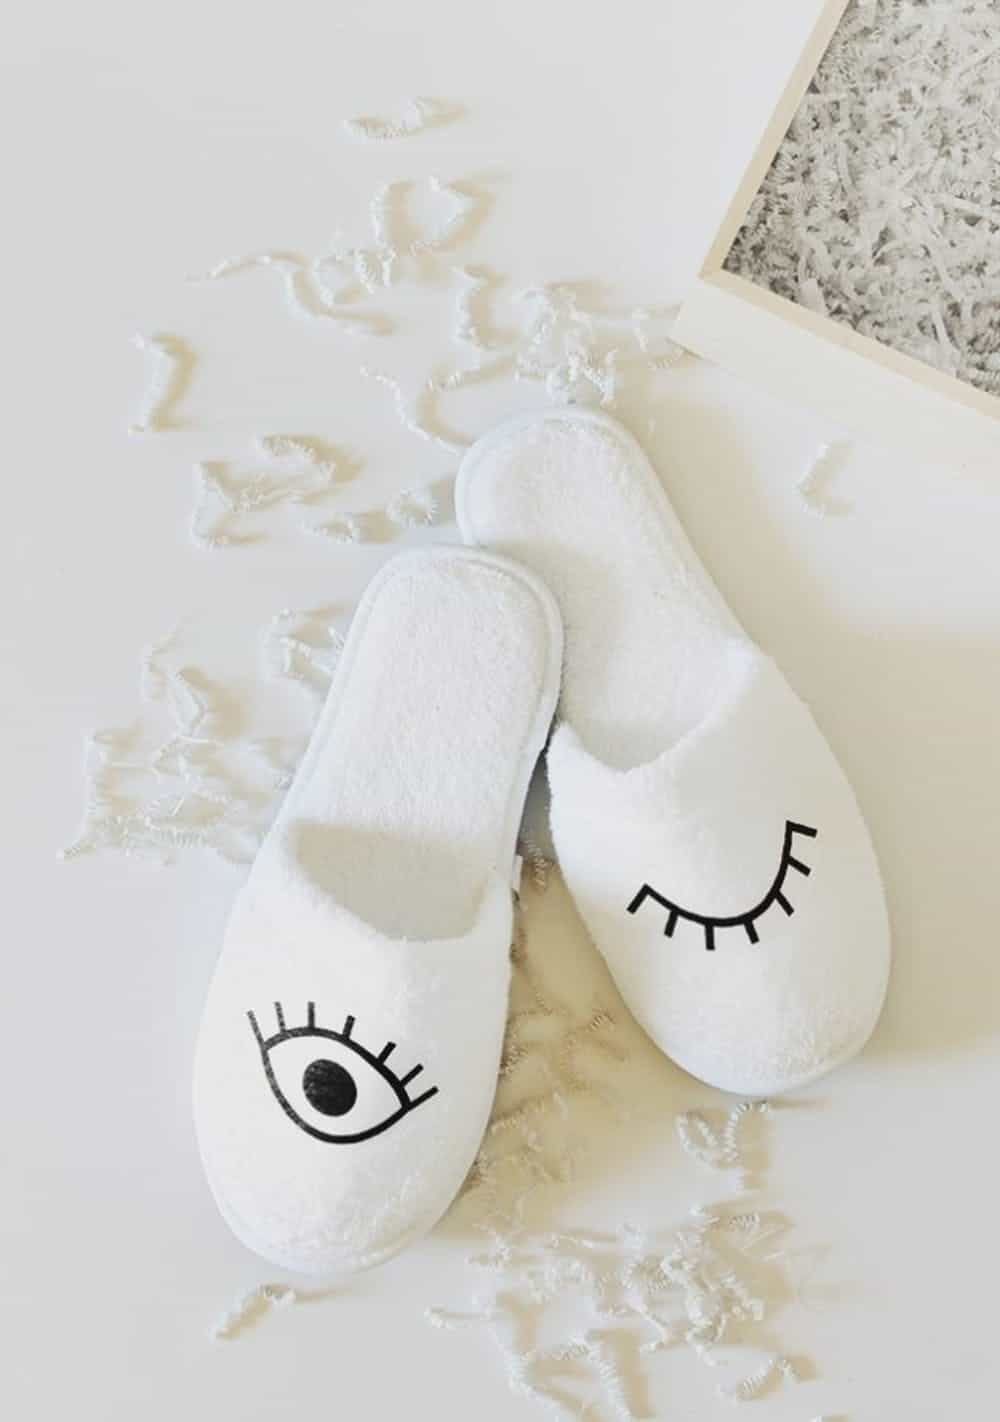 Diy eye slippers